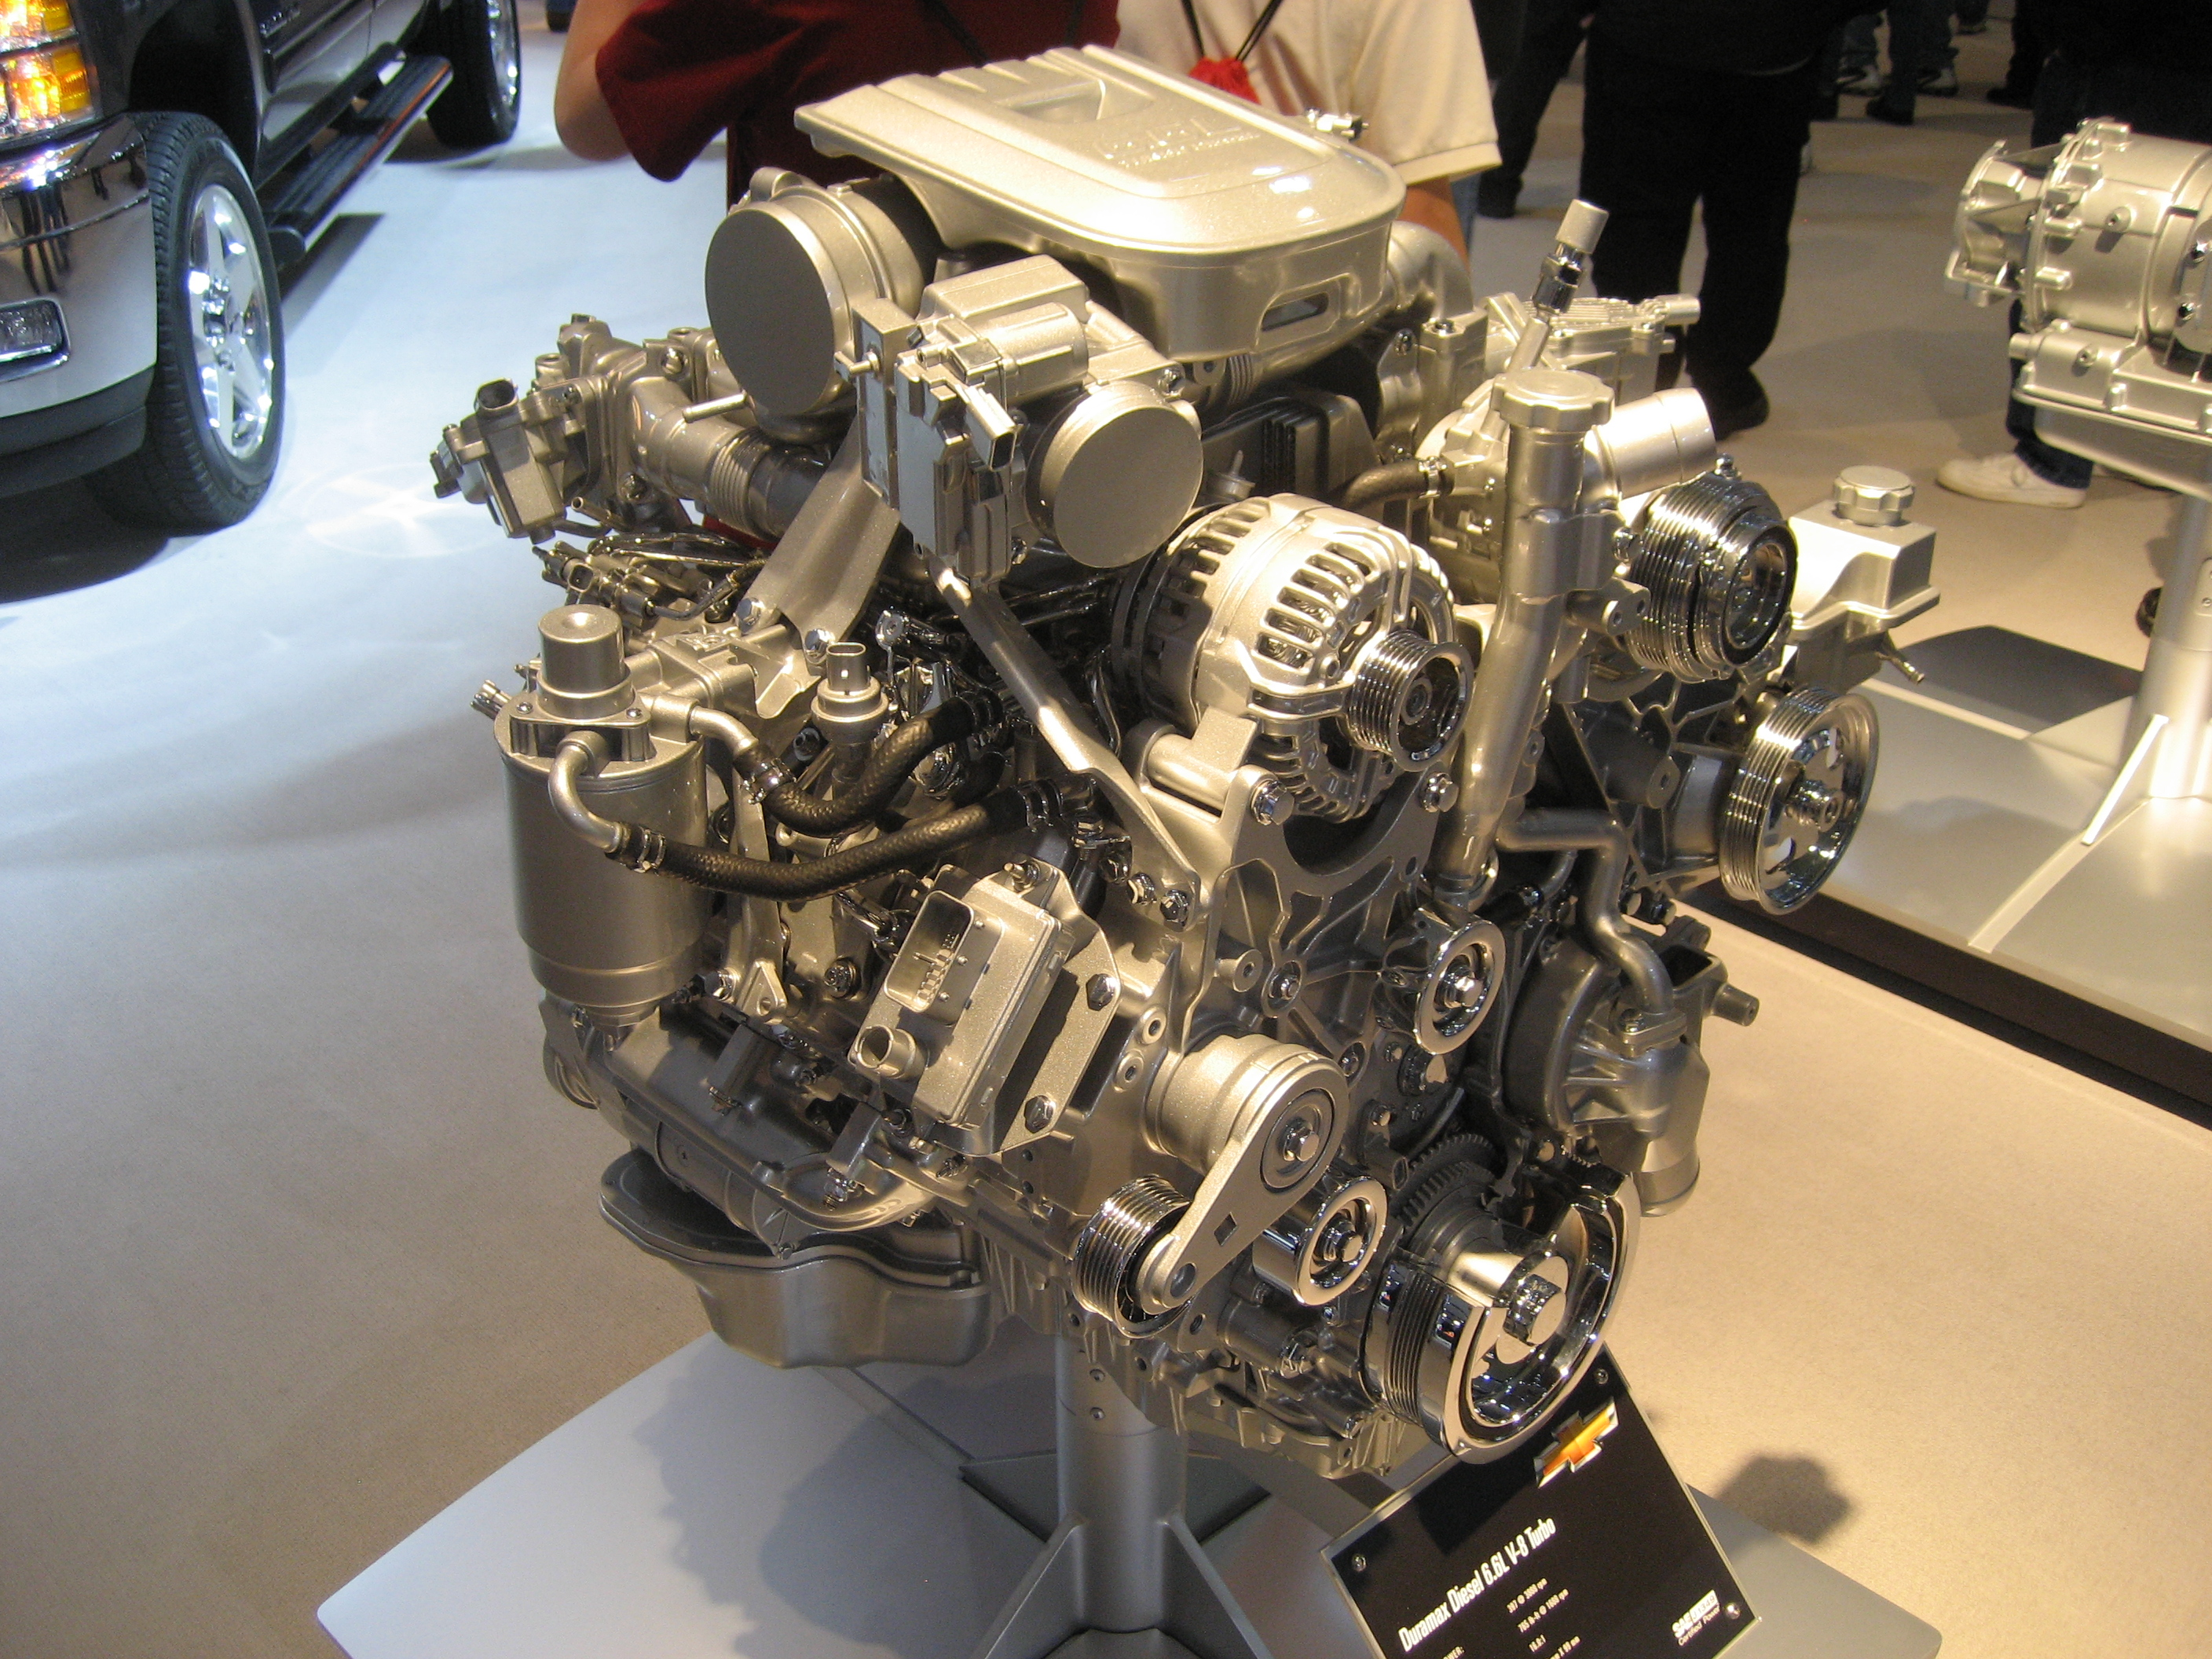 Duramax V8 Engine